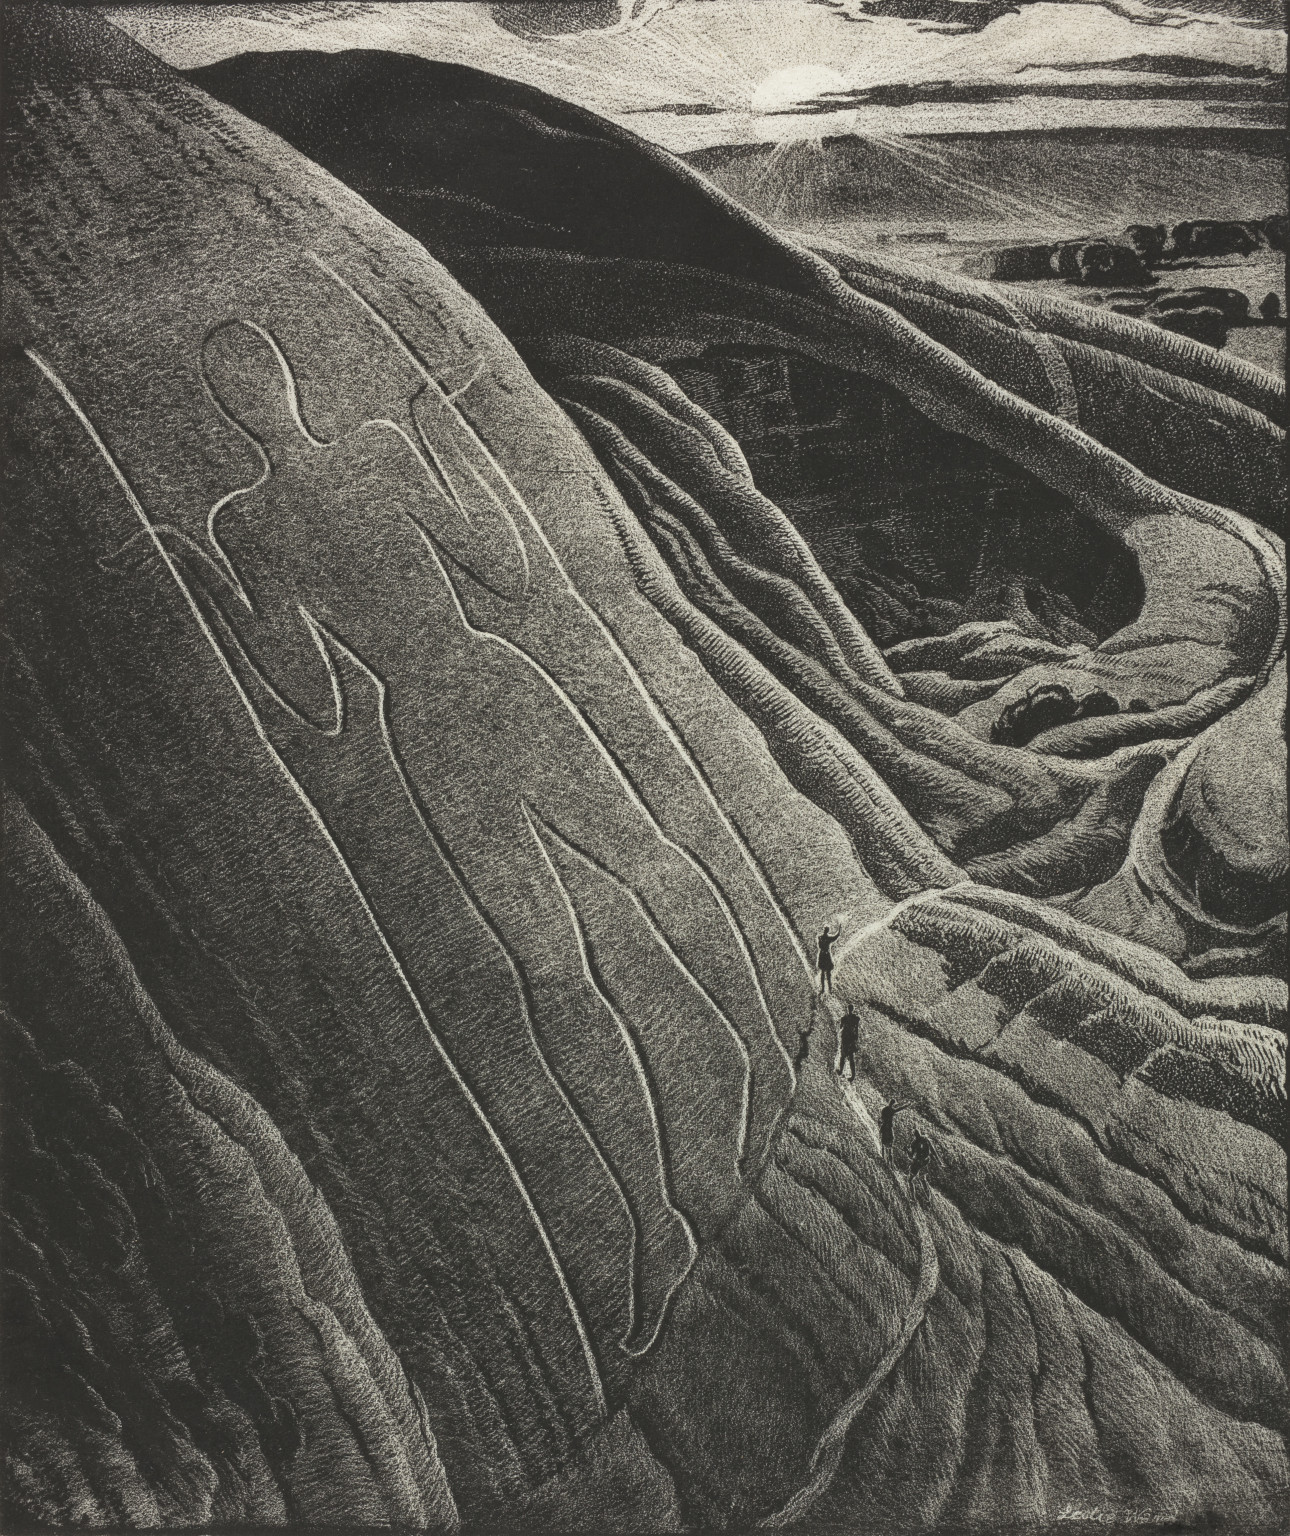 Leslie Moffat Ward, The Long Man of The Downs (detail), 1943.